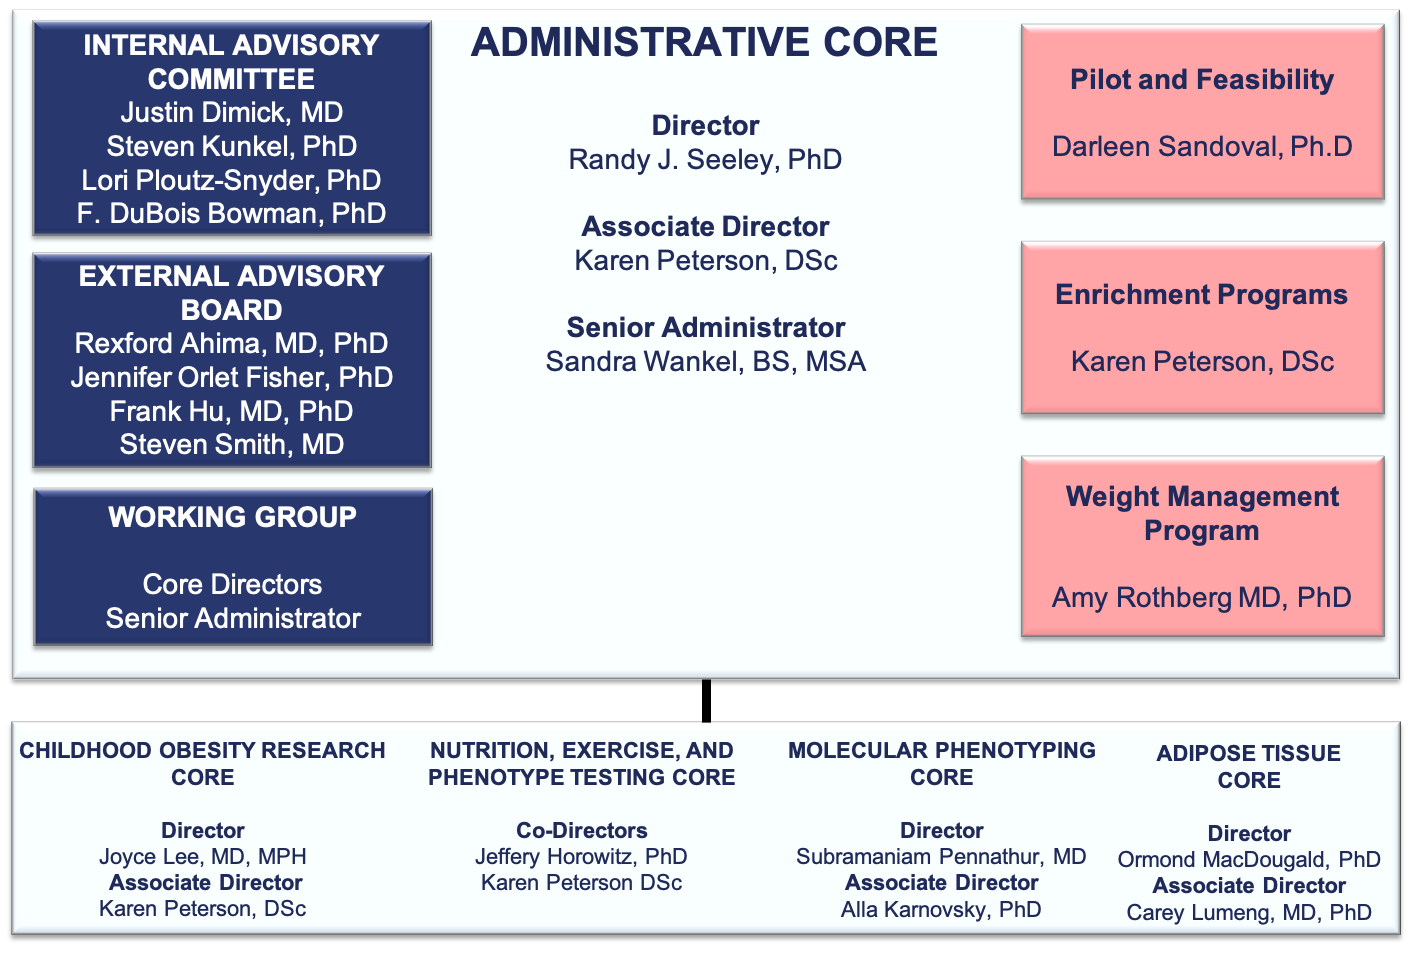 MNORC Core Services Org Chart